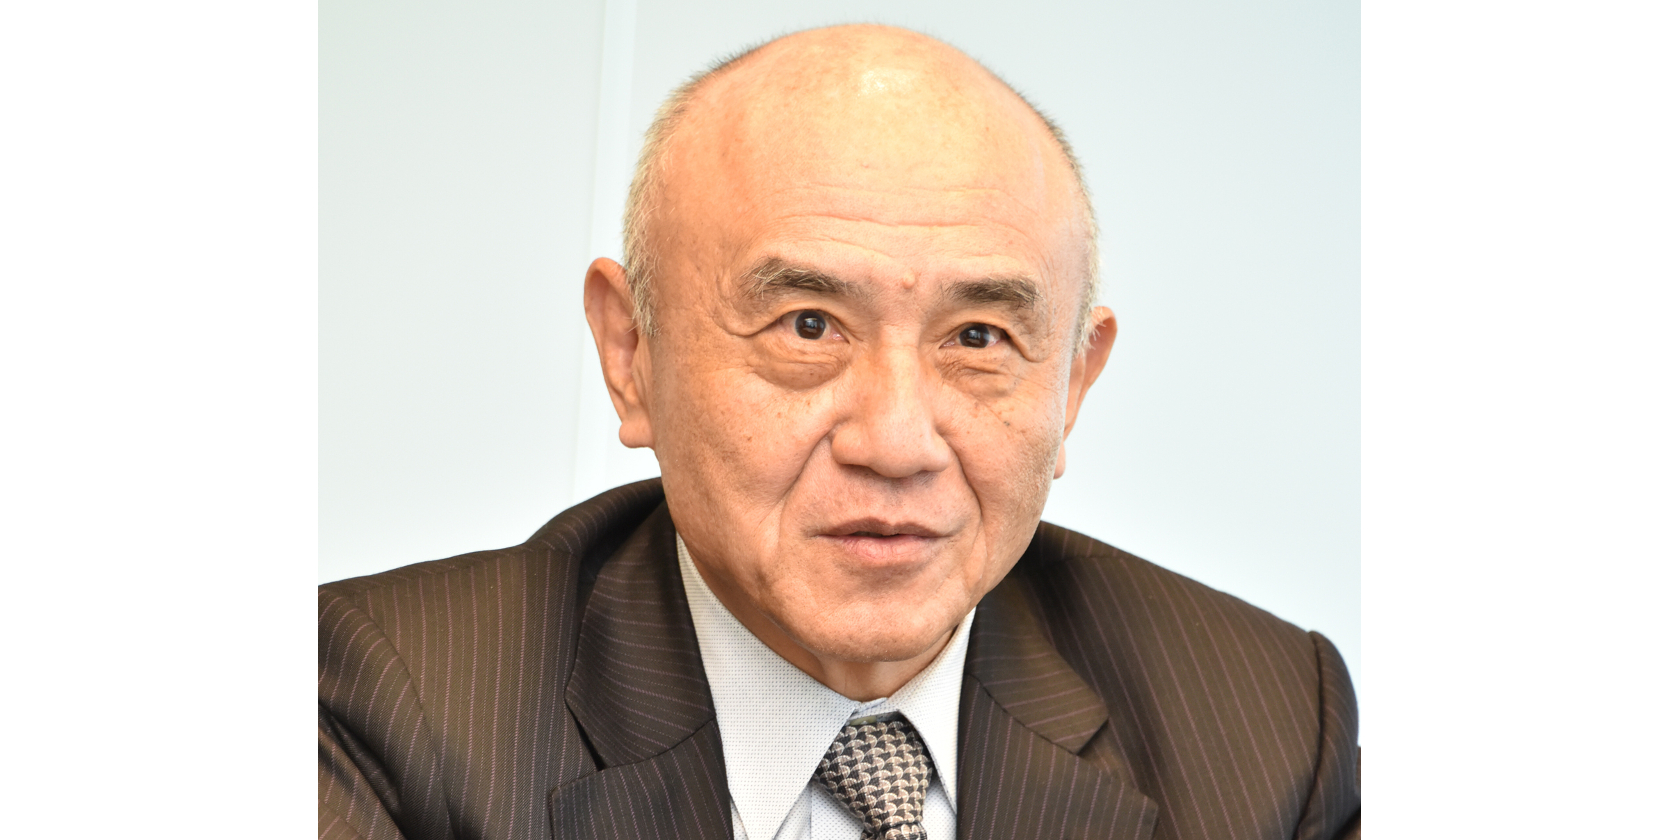 Mitsubishi Chemical Looks to Accelerate M&A Efforts in Performance Products